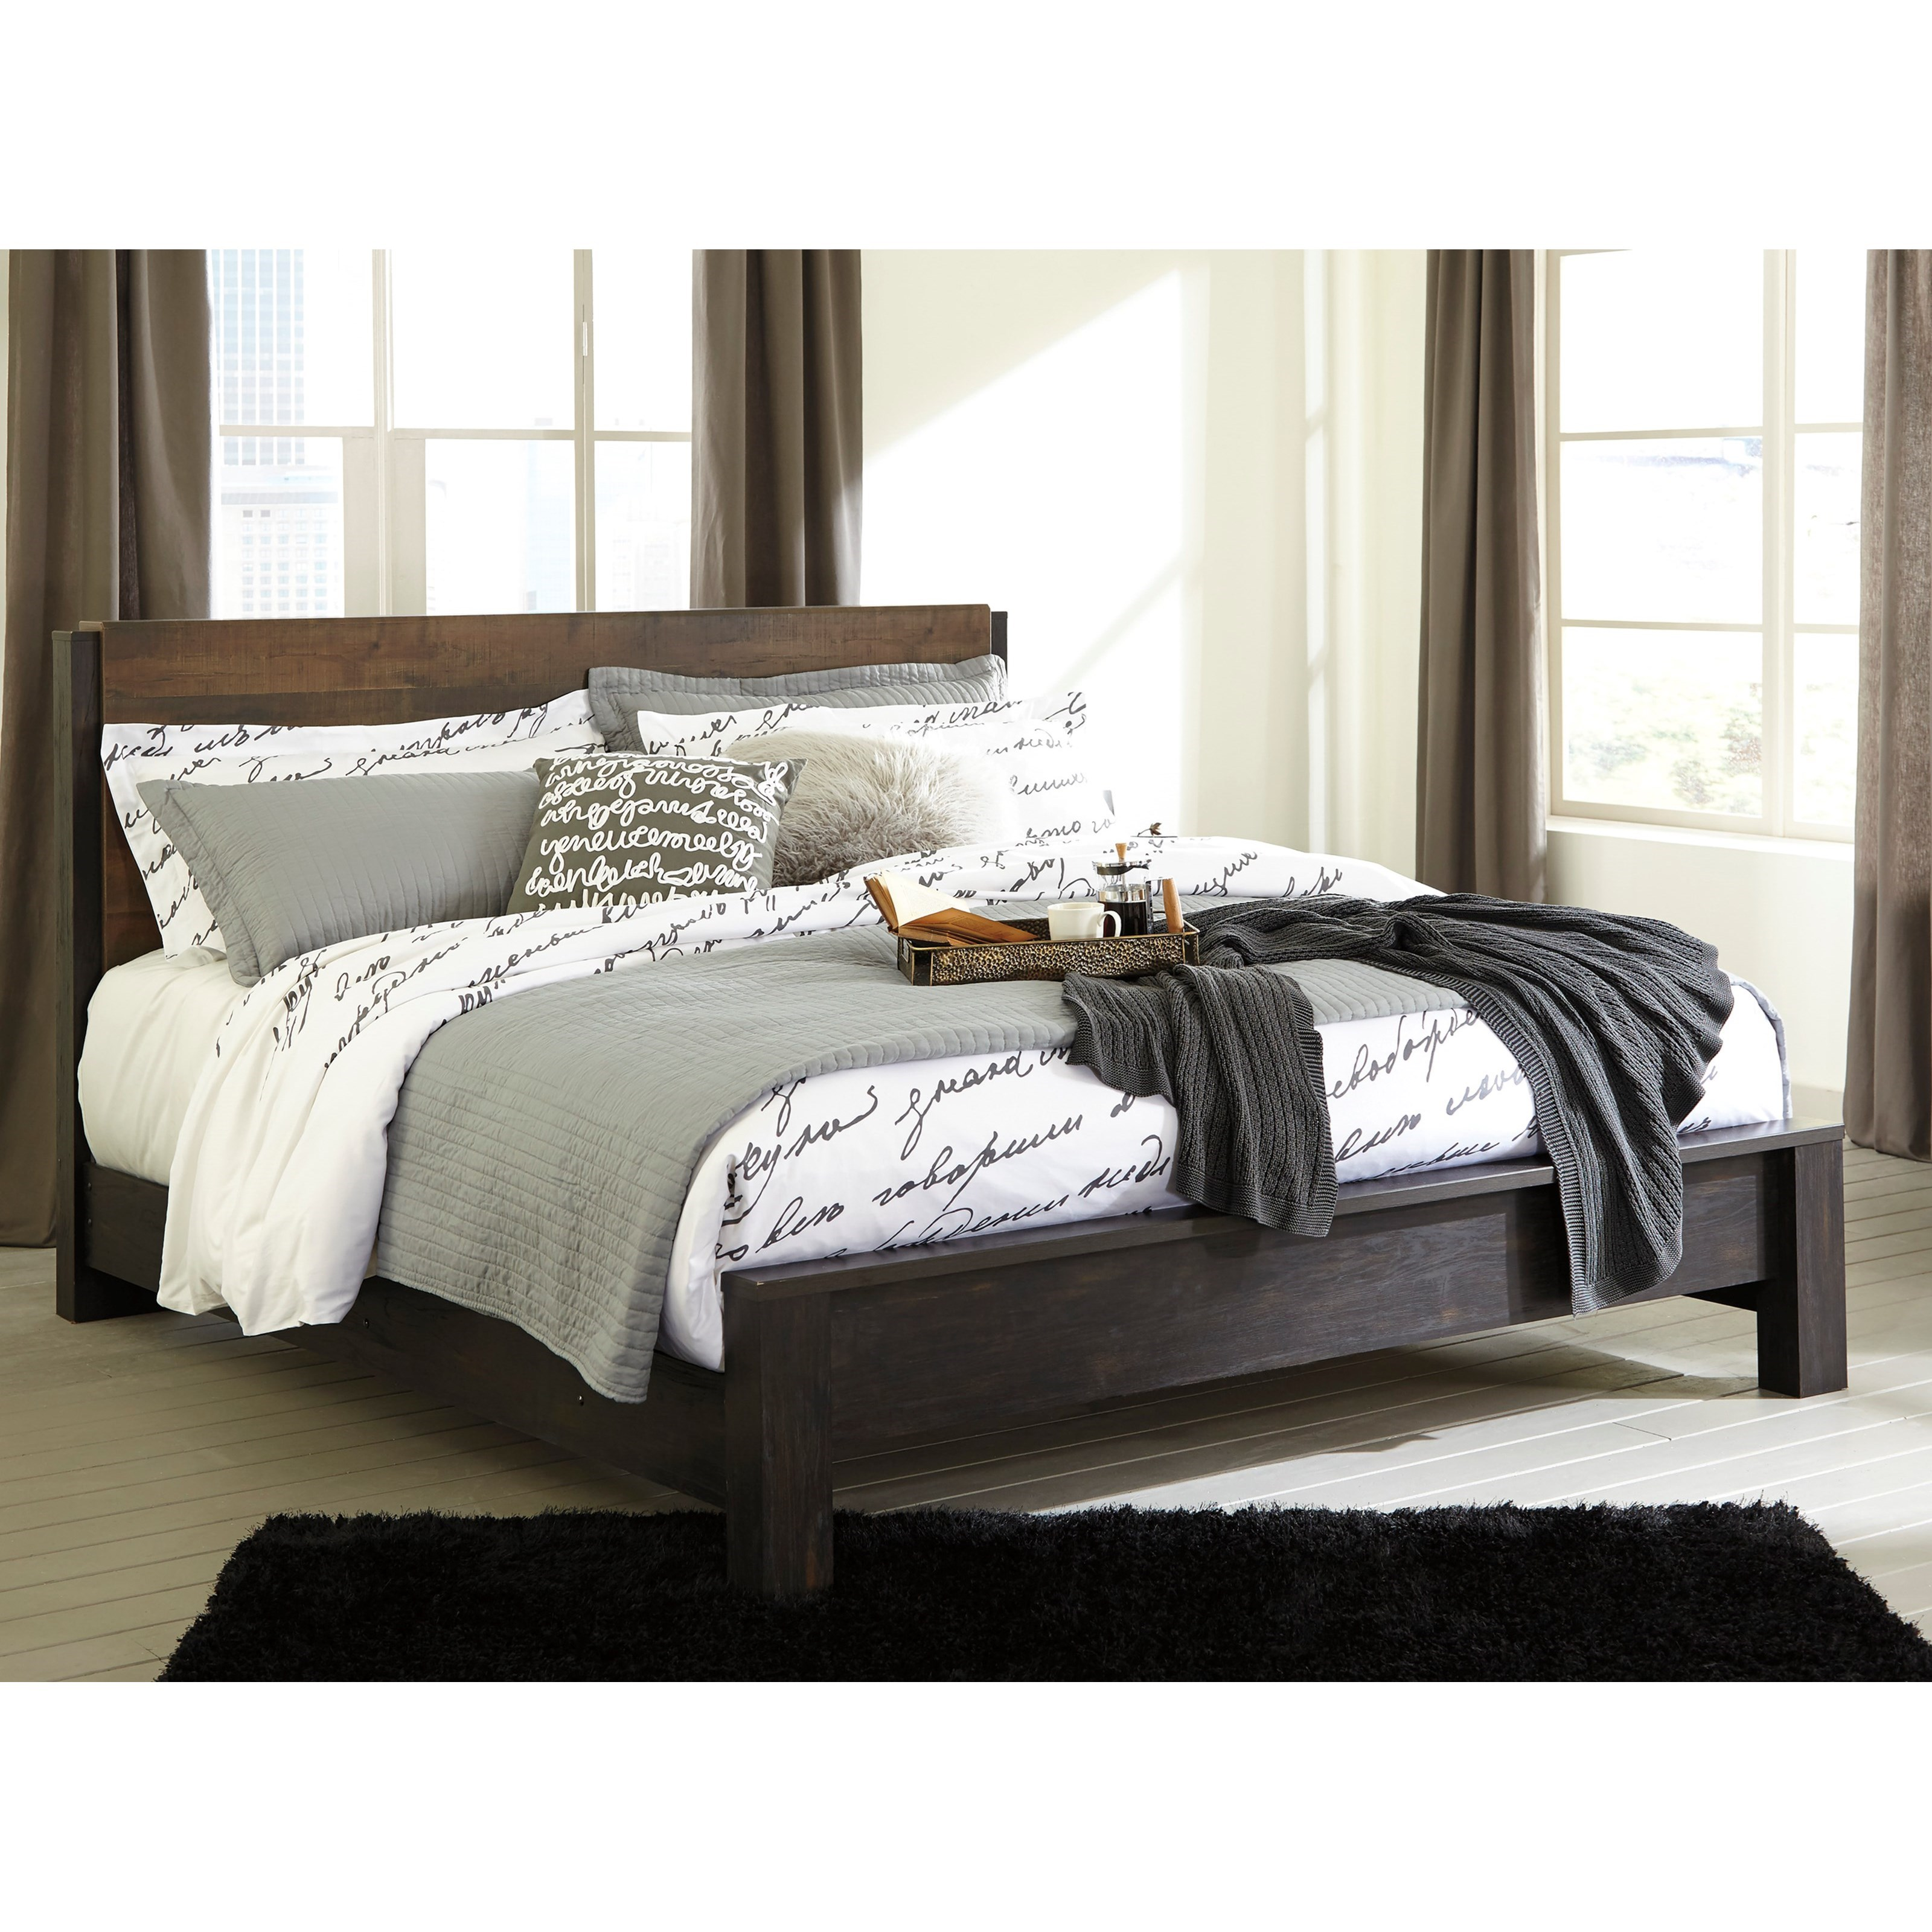 Modern Bed Frame Design Windlore Modern Rustic King Panel Bed By Signature Design By Ashley At Wayside Furniture